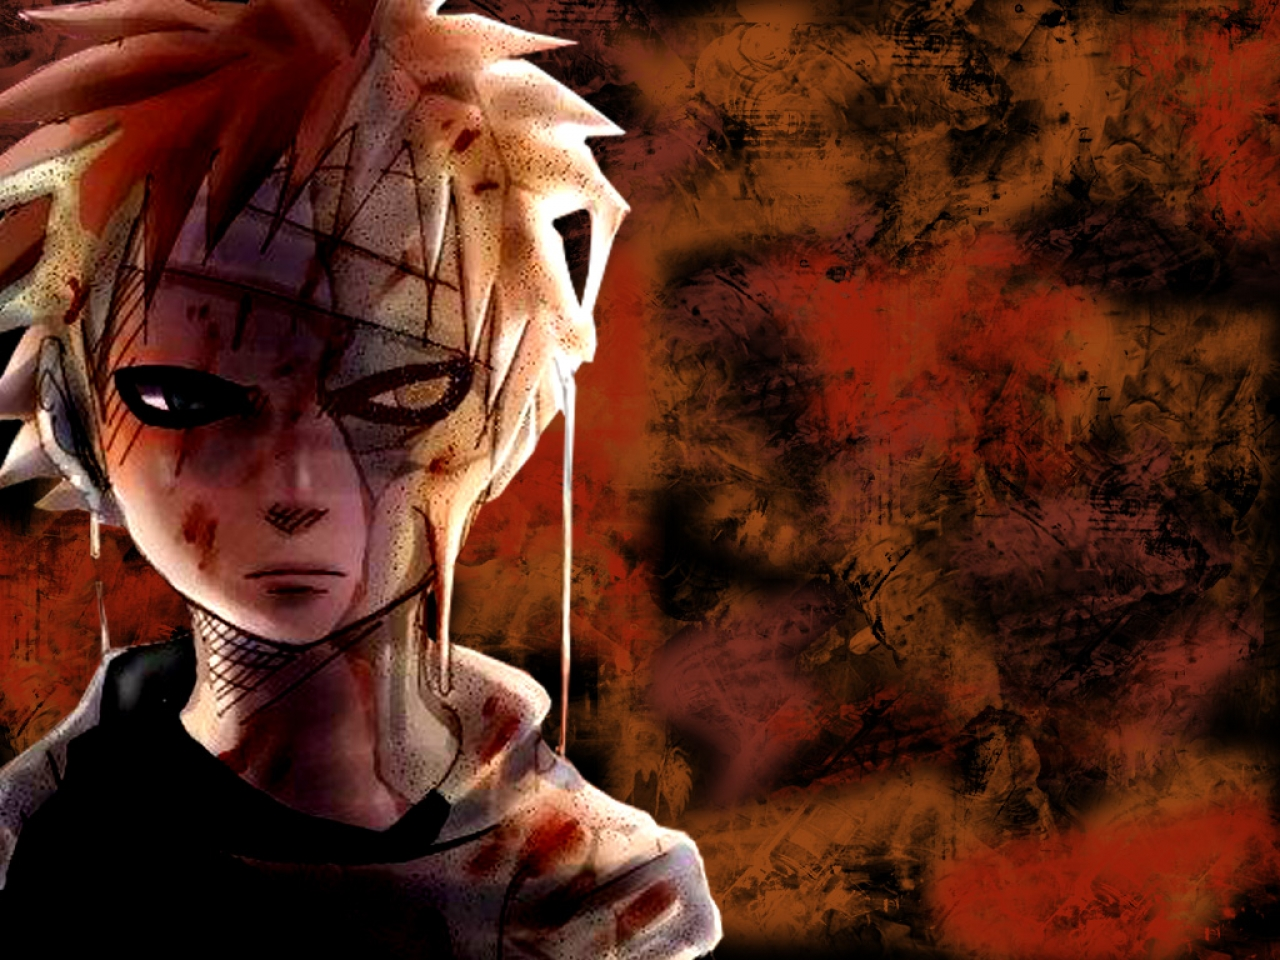 Naruto And Bleach Anime Wallpapers Managa Style Gaara 1280x960